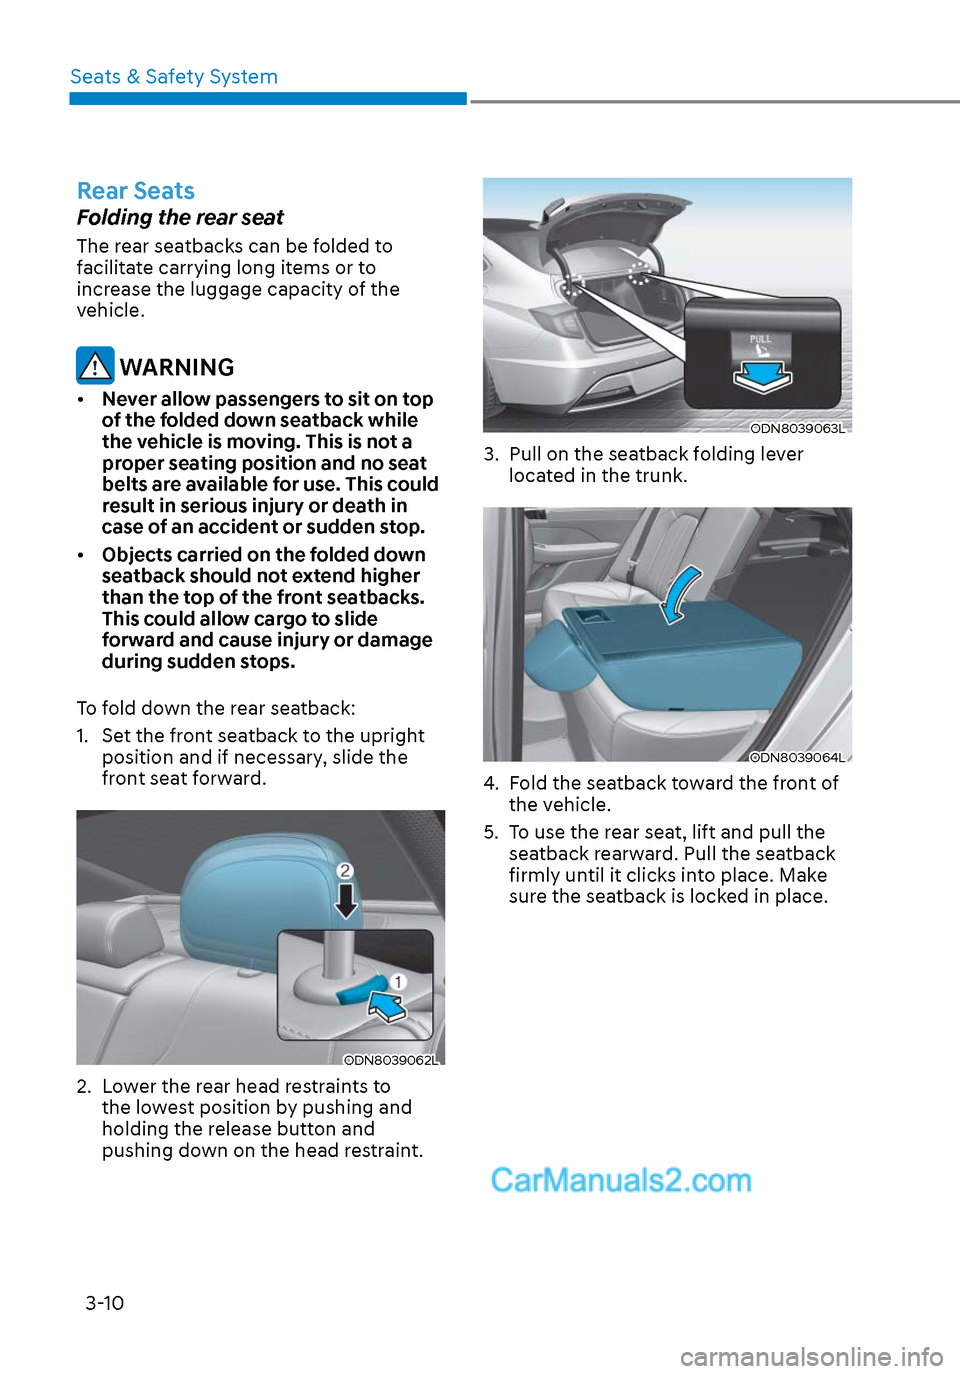 Hyundai Sonata 2020 Owners Guide Seats & Safety System3-10 Rear Seats Folding the rear seat The rear seatbacks can be folded to  facilitate carrying long items or to  increase the luggage capacity of the  vehicle.  WARNING •  Never